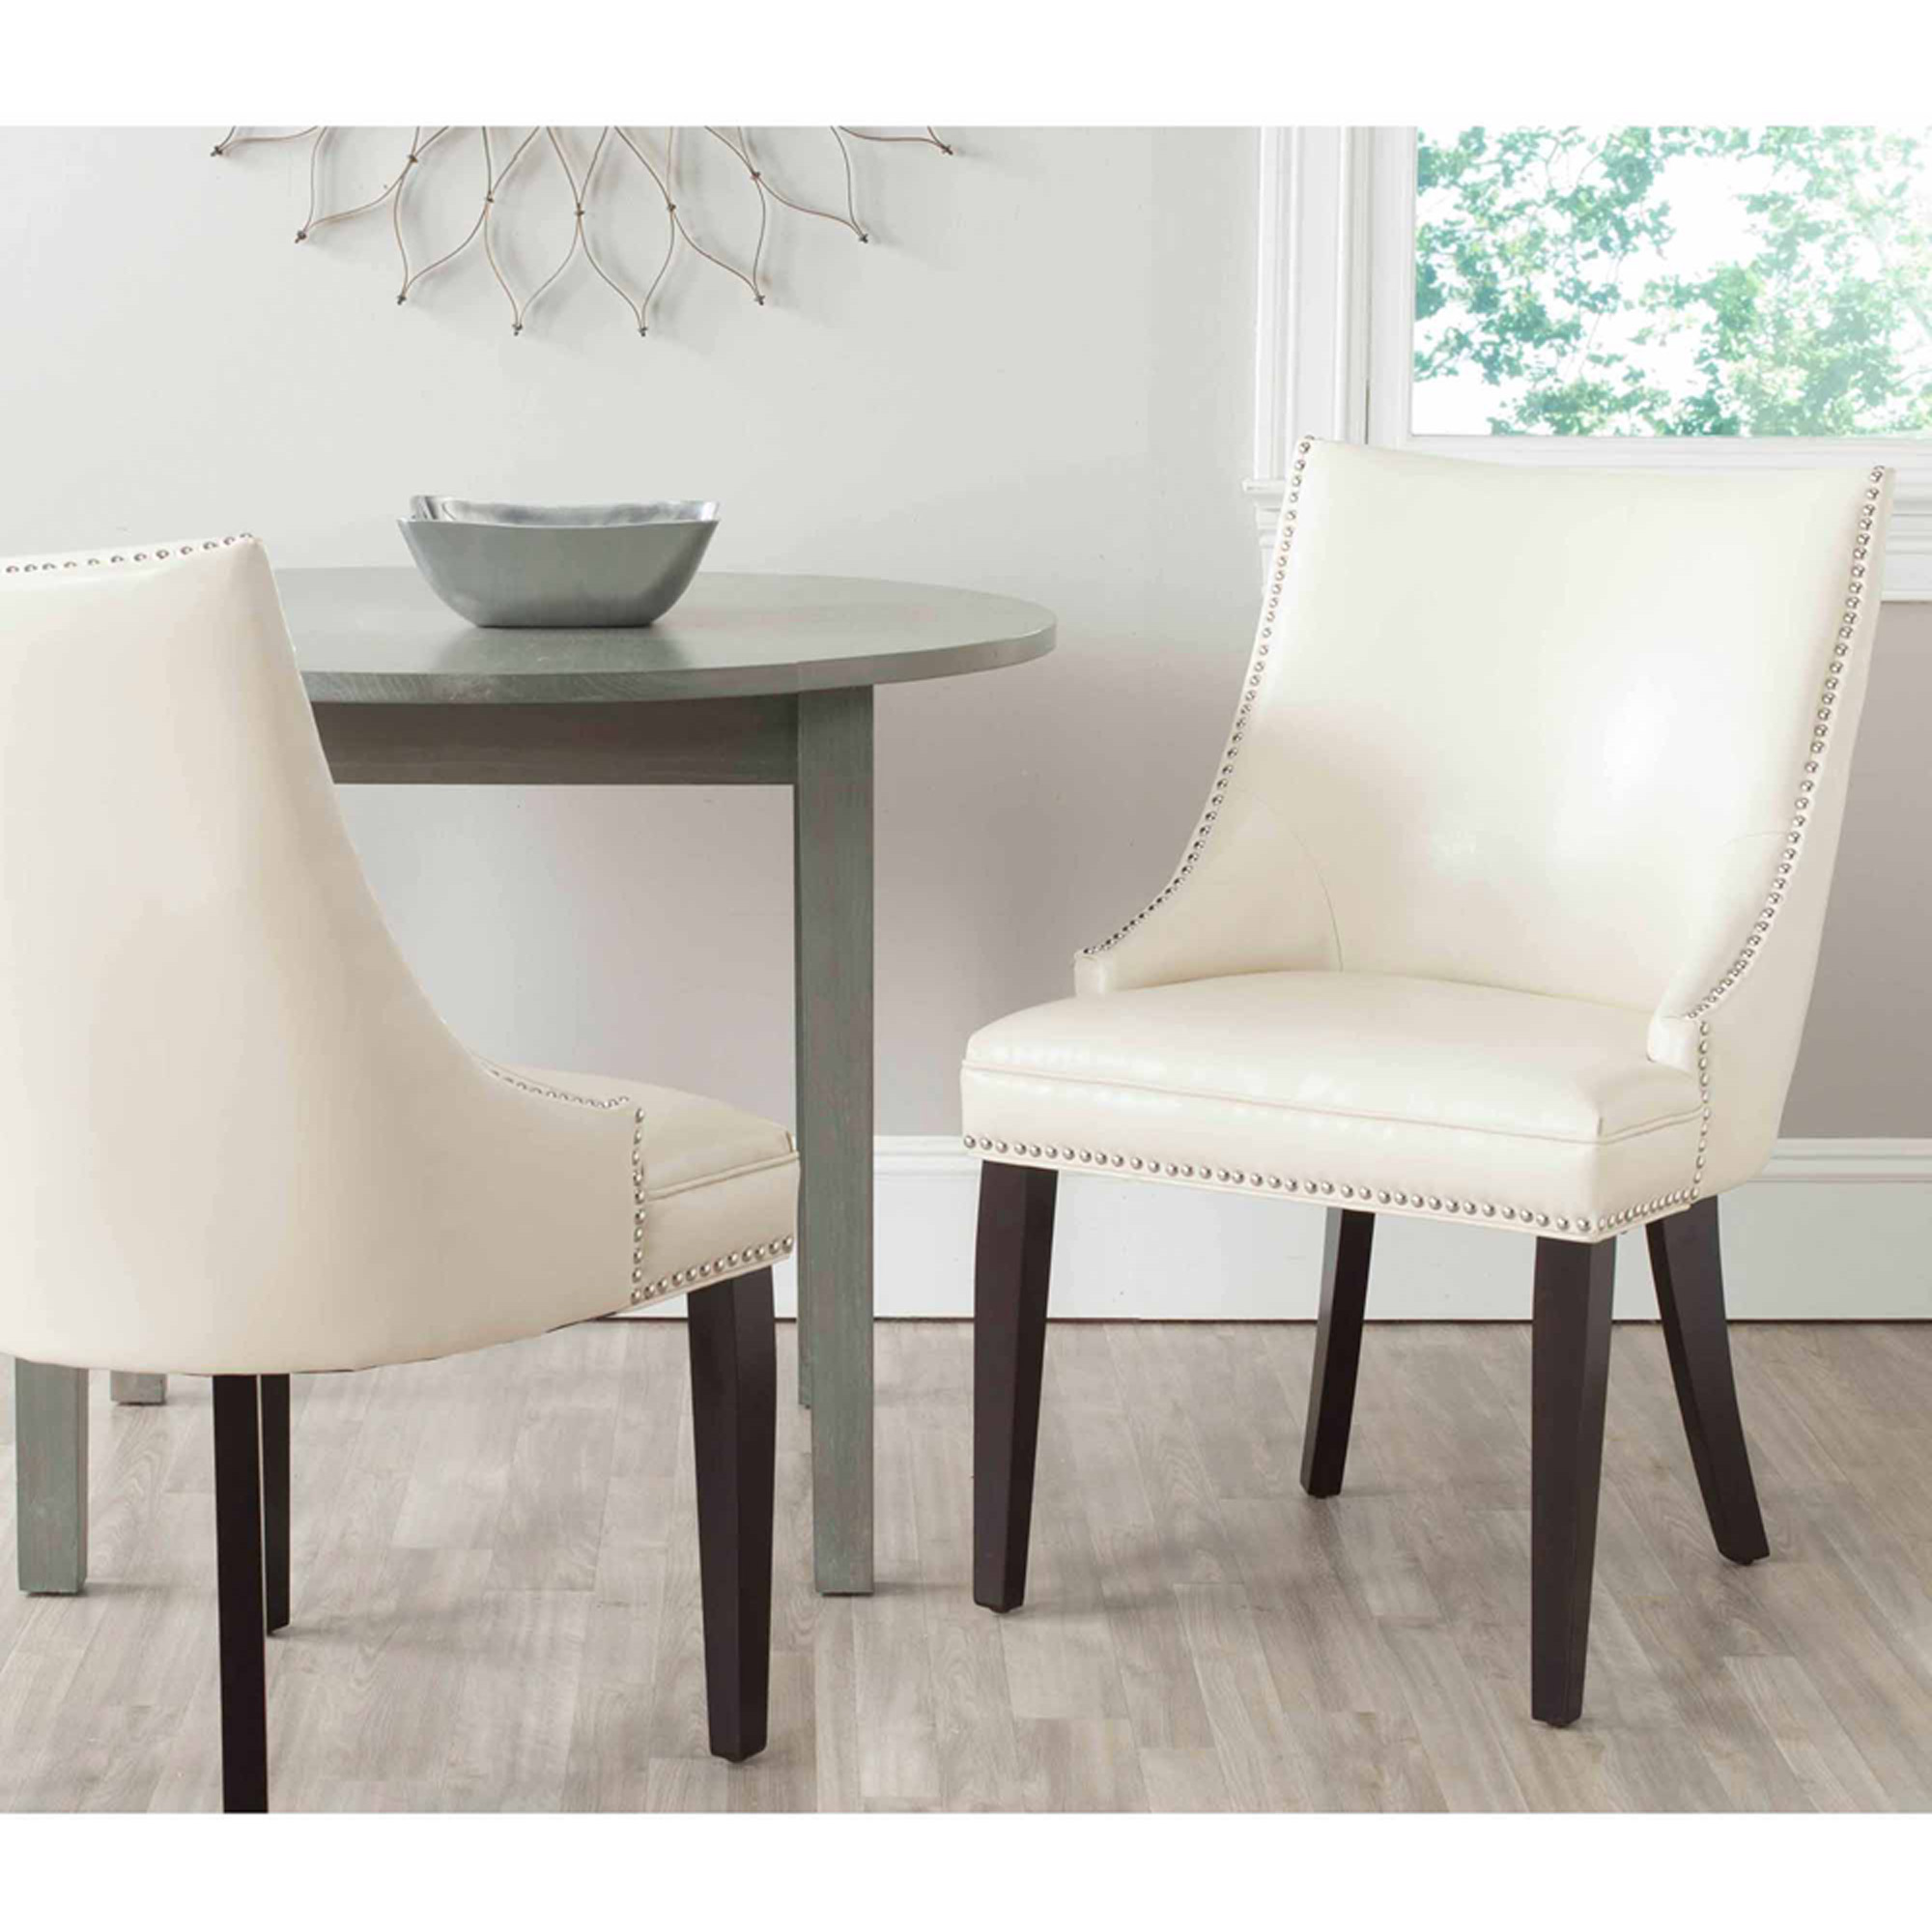 Safavieh Afton Bicast Leather Side Chair with Silver Nail Heads, Set of 2 by Safavieh